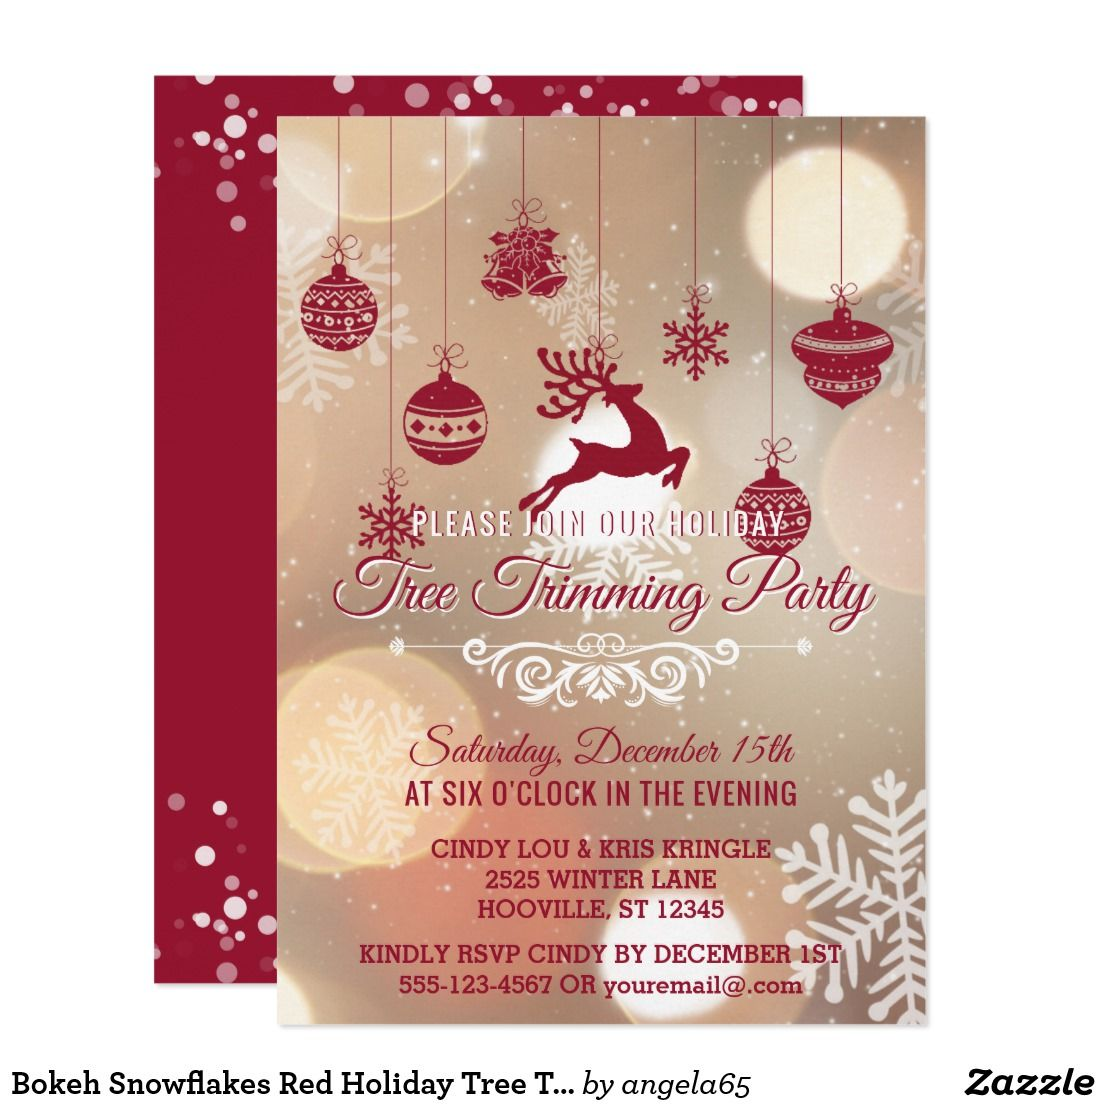 Bokeh Snowflakes Red Holiday Tree Trimming Party Invitation ...